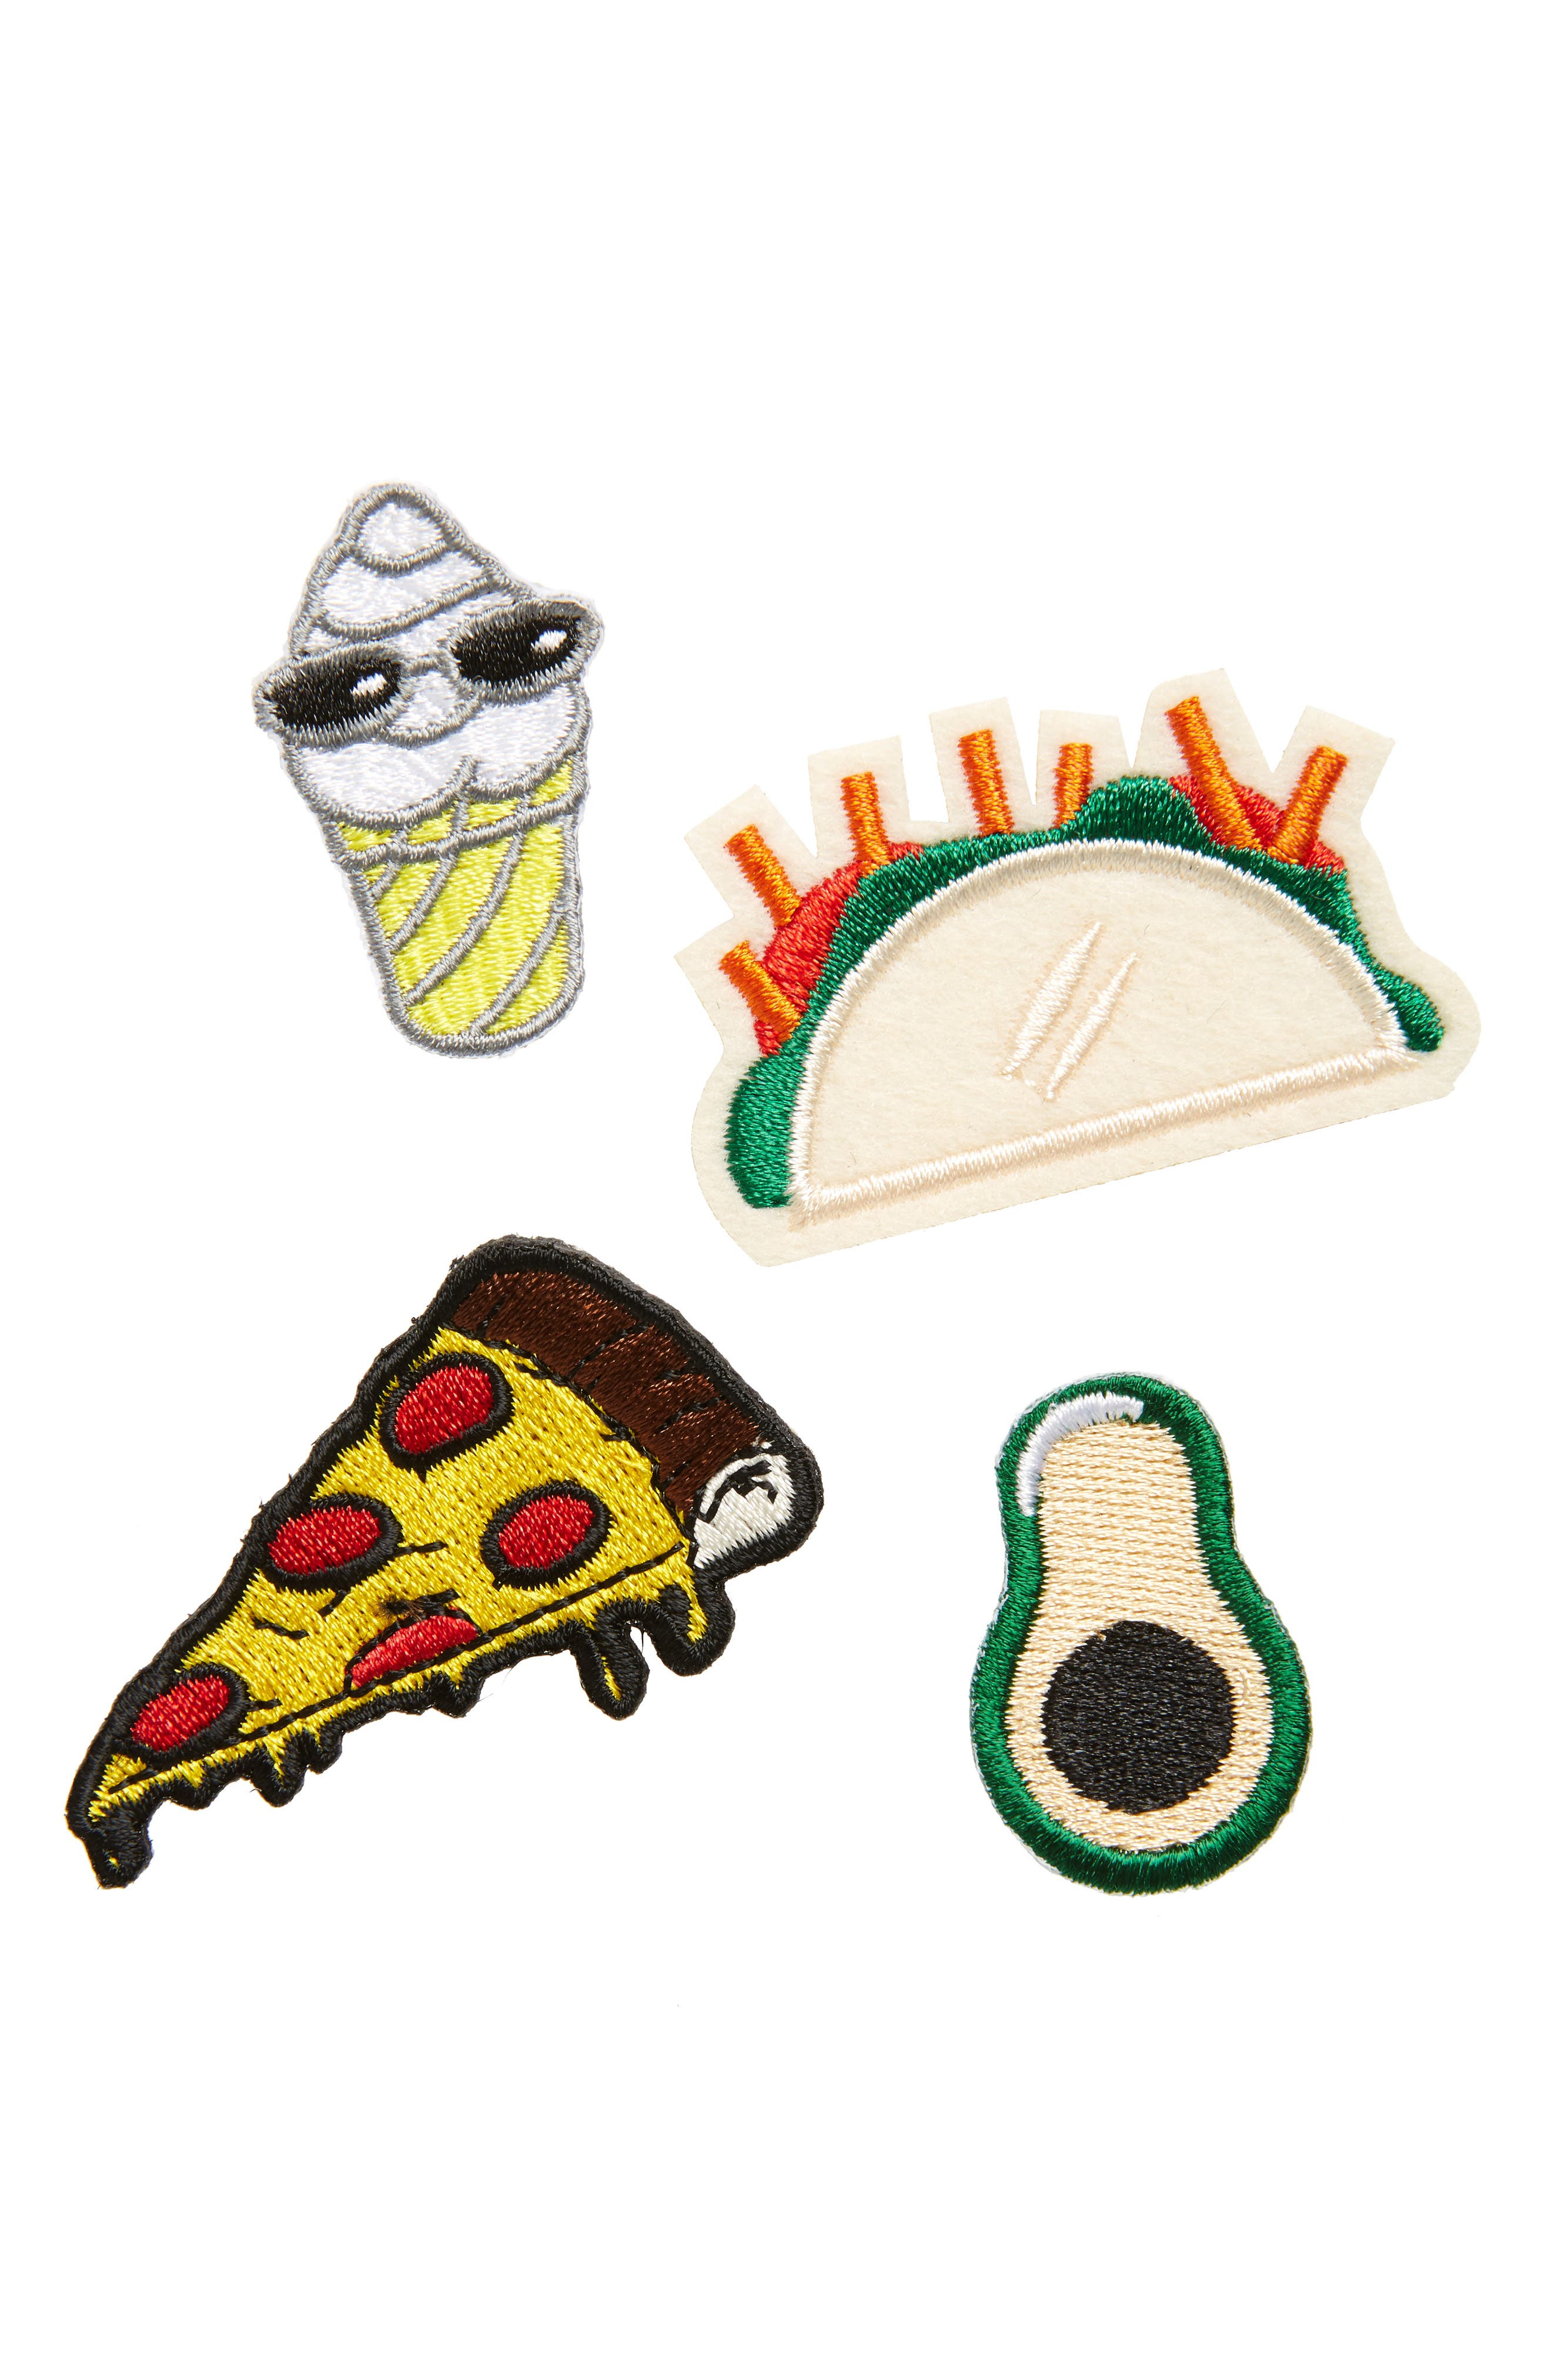 THE ACCESSORY COLLECTIVE Accessory Collective Taco Pack of 4 Iron-On Patches